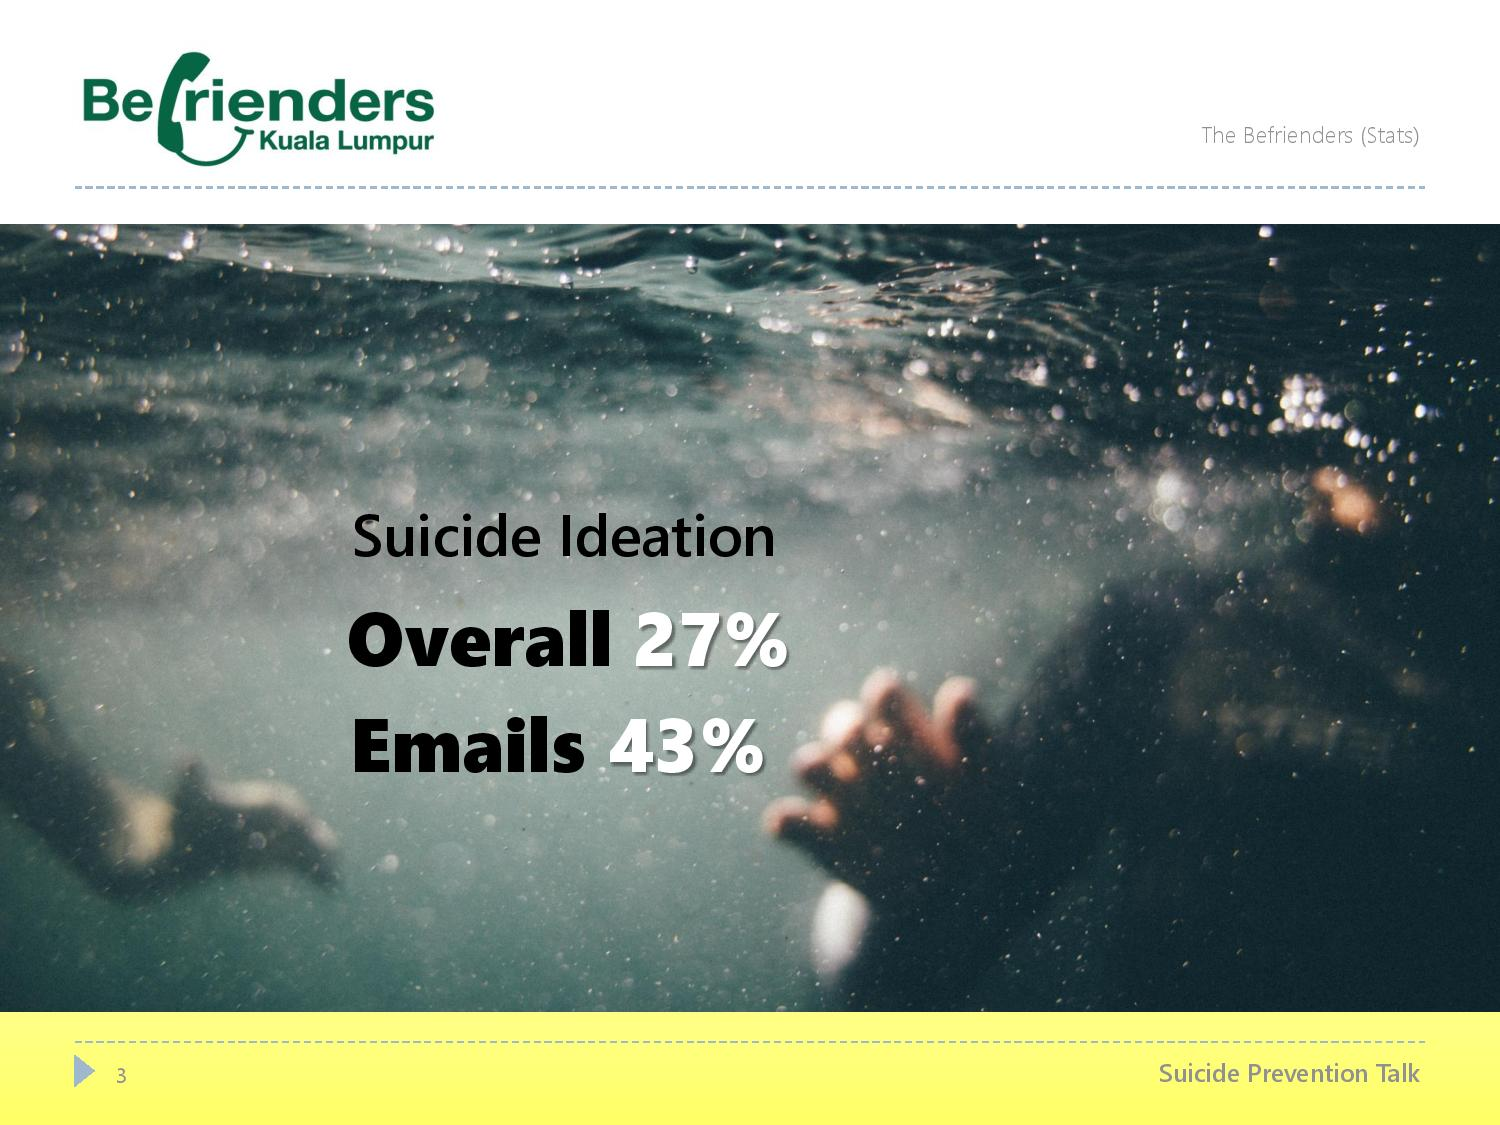 Even though there are more calls than emails, almost half of the people who email express the desire to die by suicide. Image courtesy of Befrienders KL.